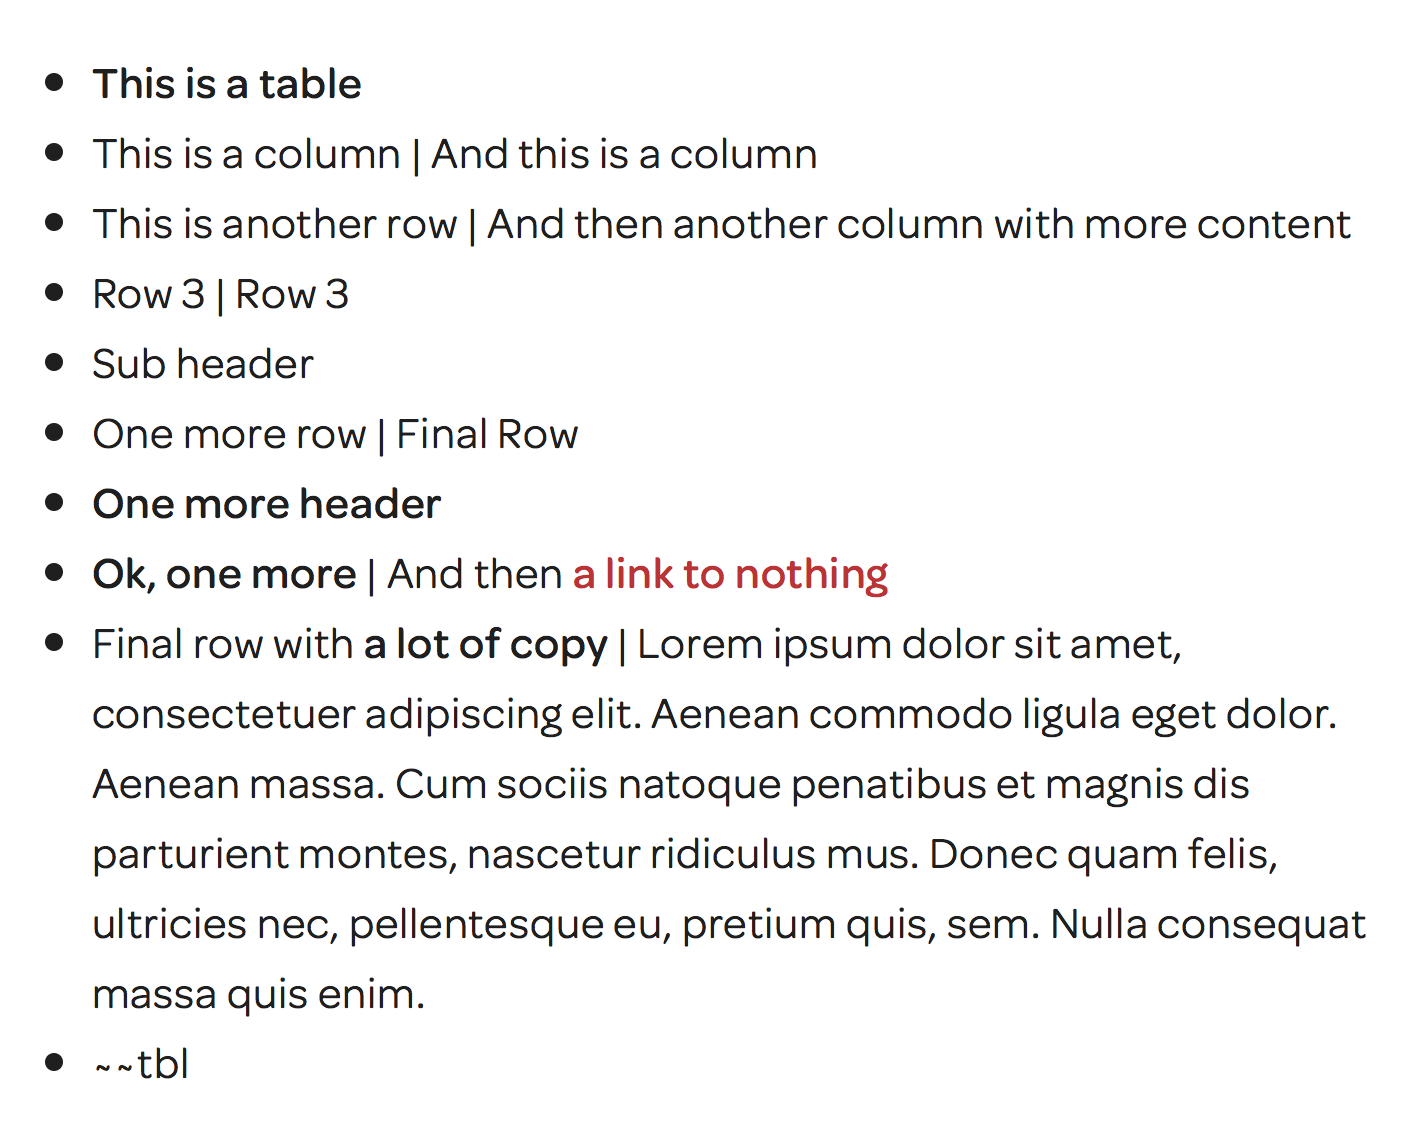 The table above in edit mode - When you're in edit mode, by adding --tbl as the last bullet, this signals the script to create a table out of your list. When you add a pipe | that defines a table row. When you have no pipe, that's a header. No pipe and bold will shade the row.